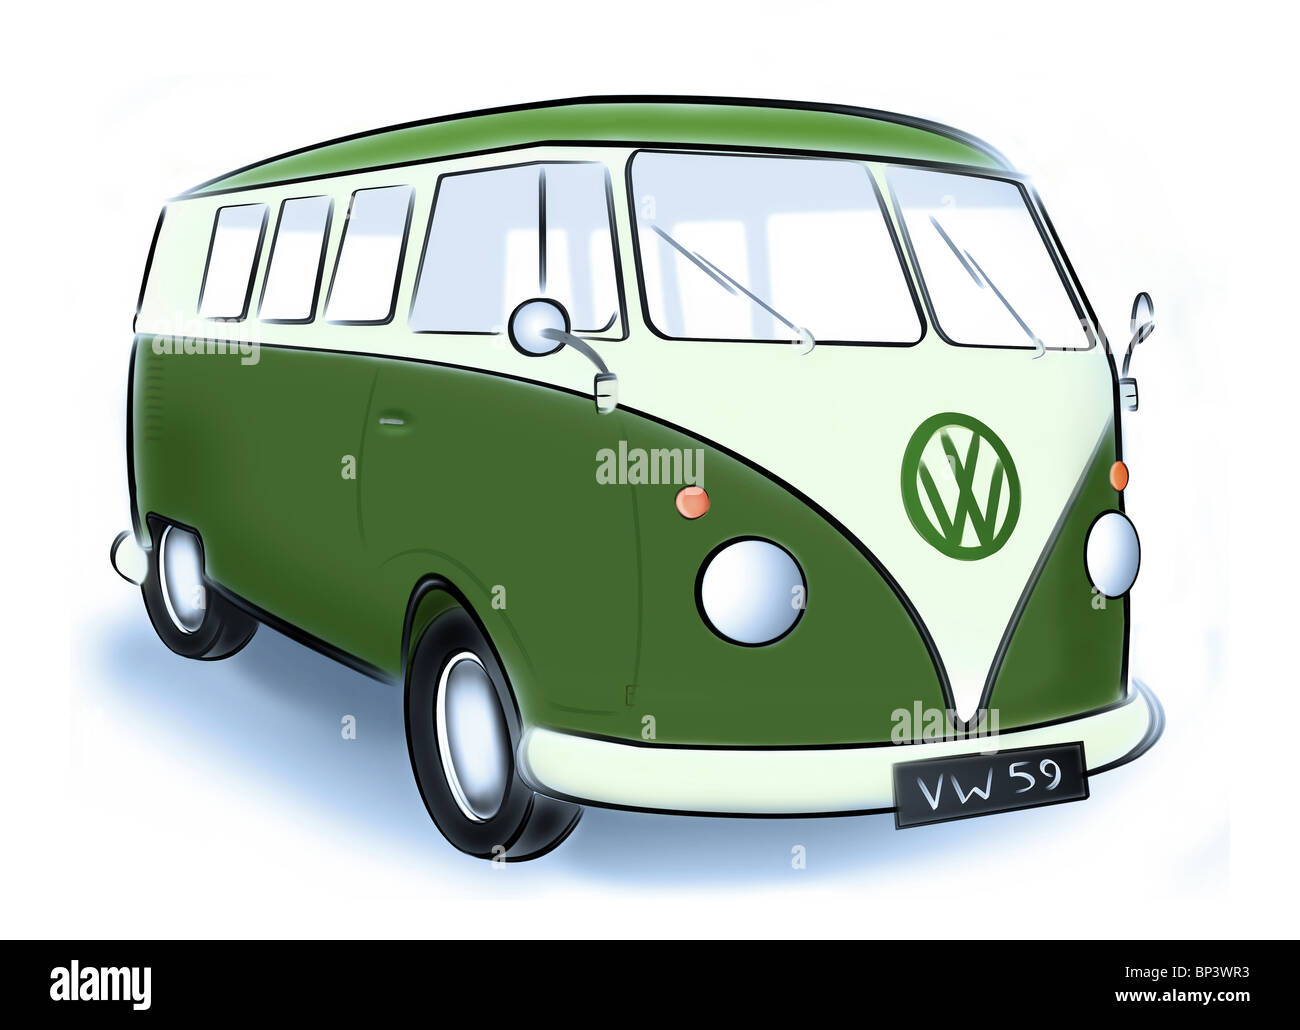 illustration of a 1950s Volkswagen two tone classic Beetle campervan. - Stock Image